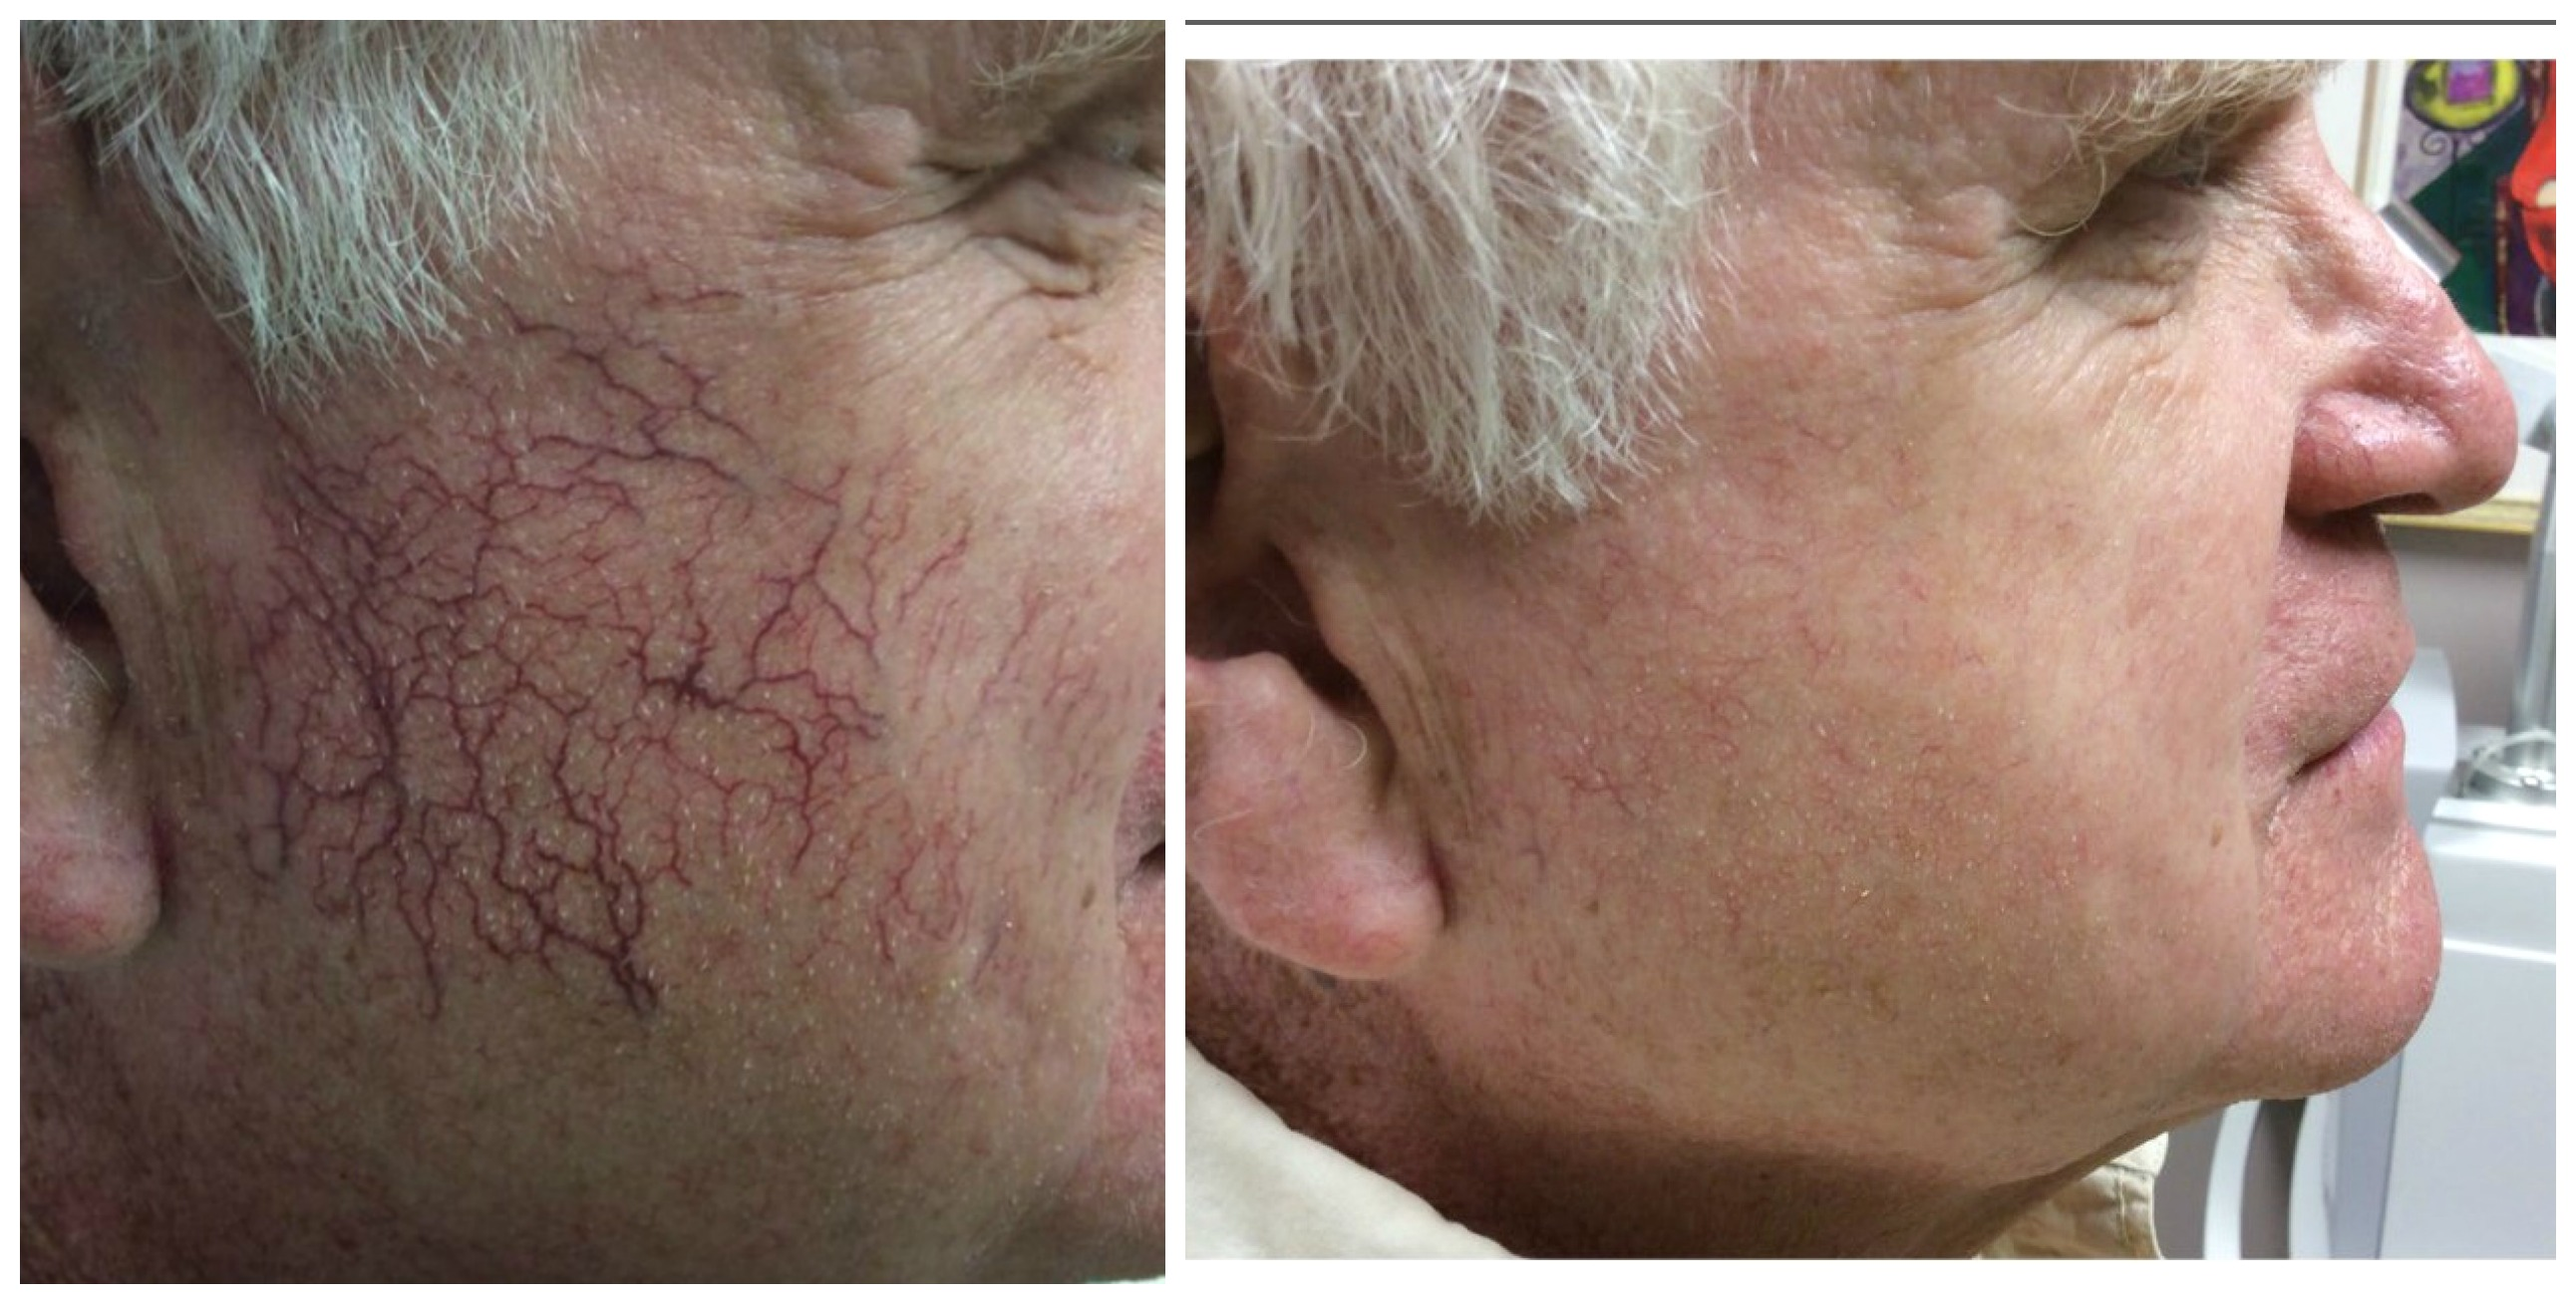 Vascular Laser for Spider Face Veins